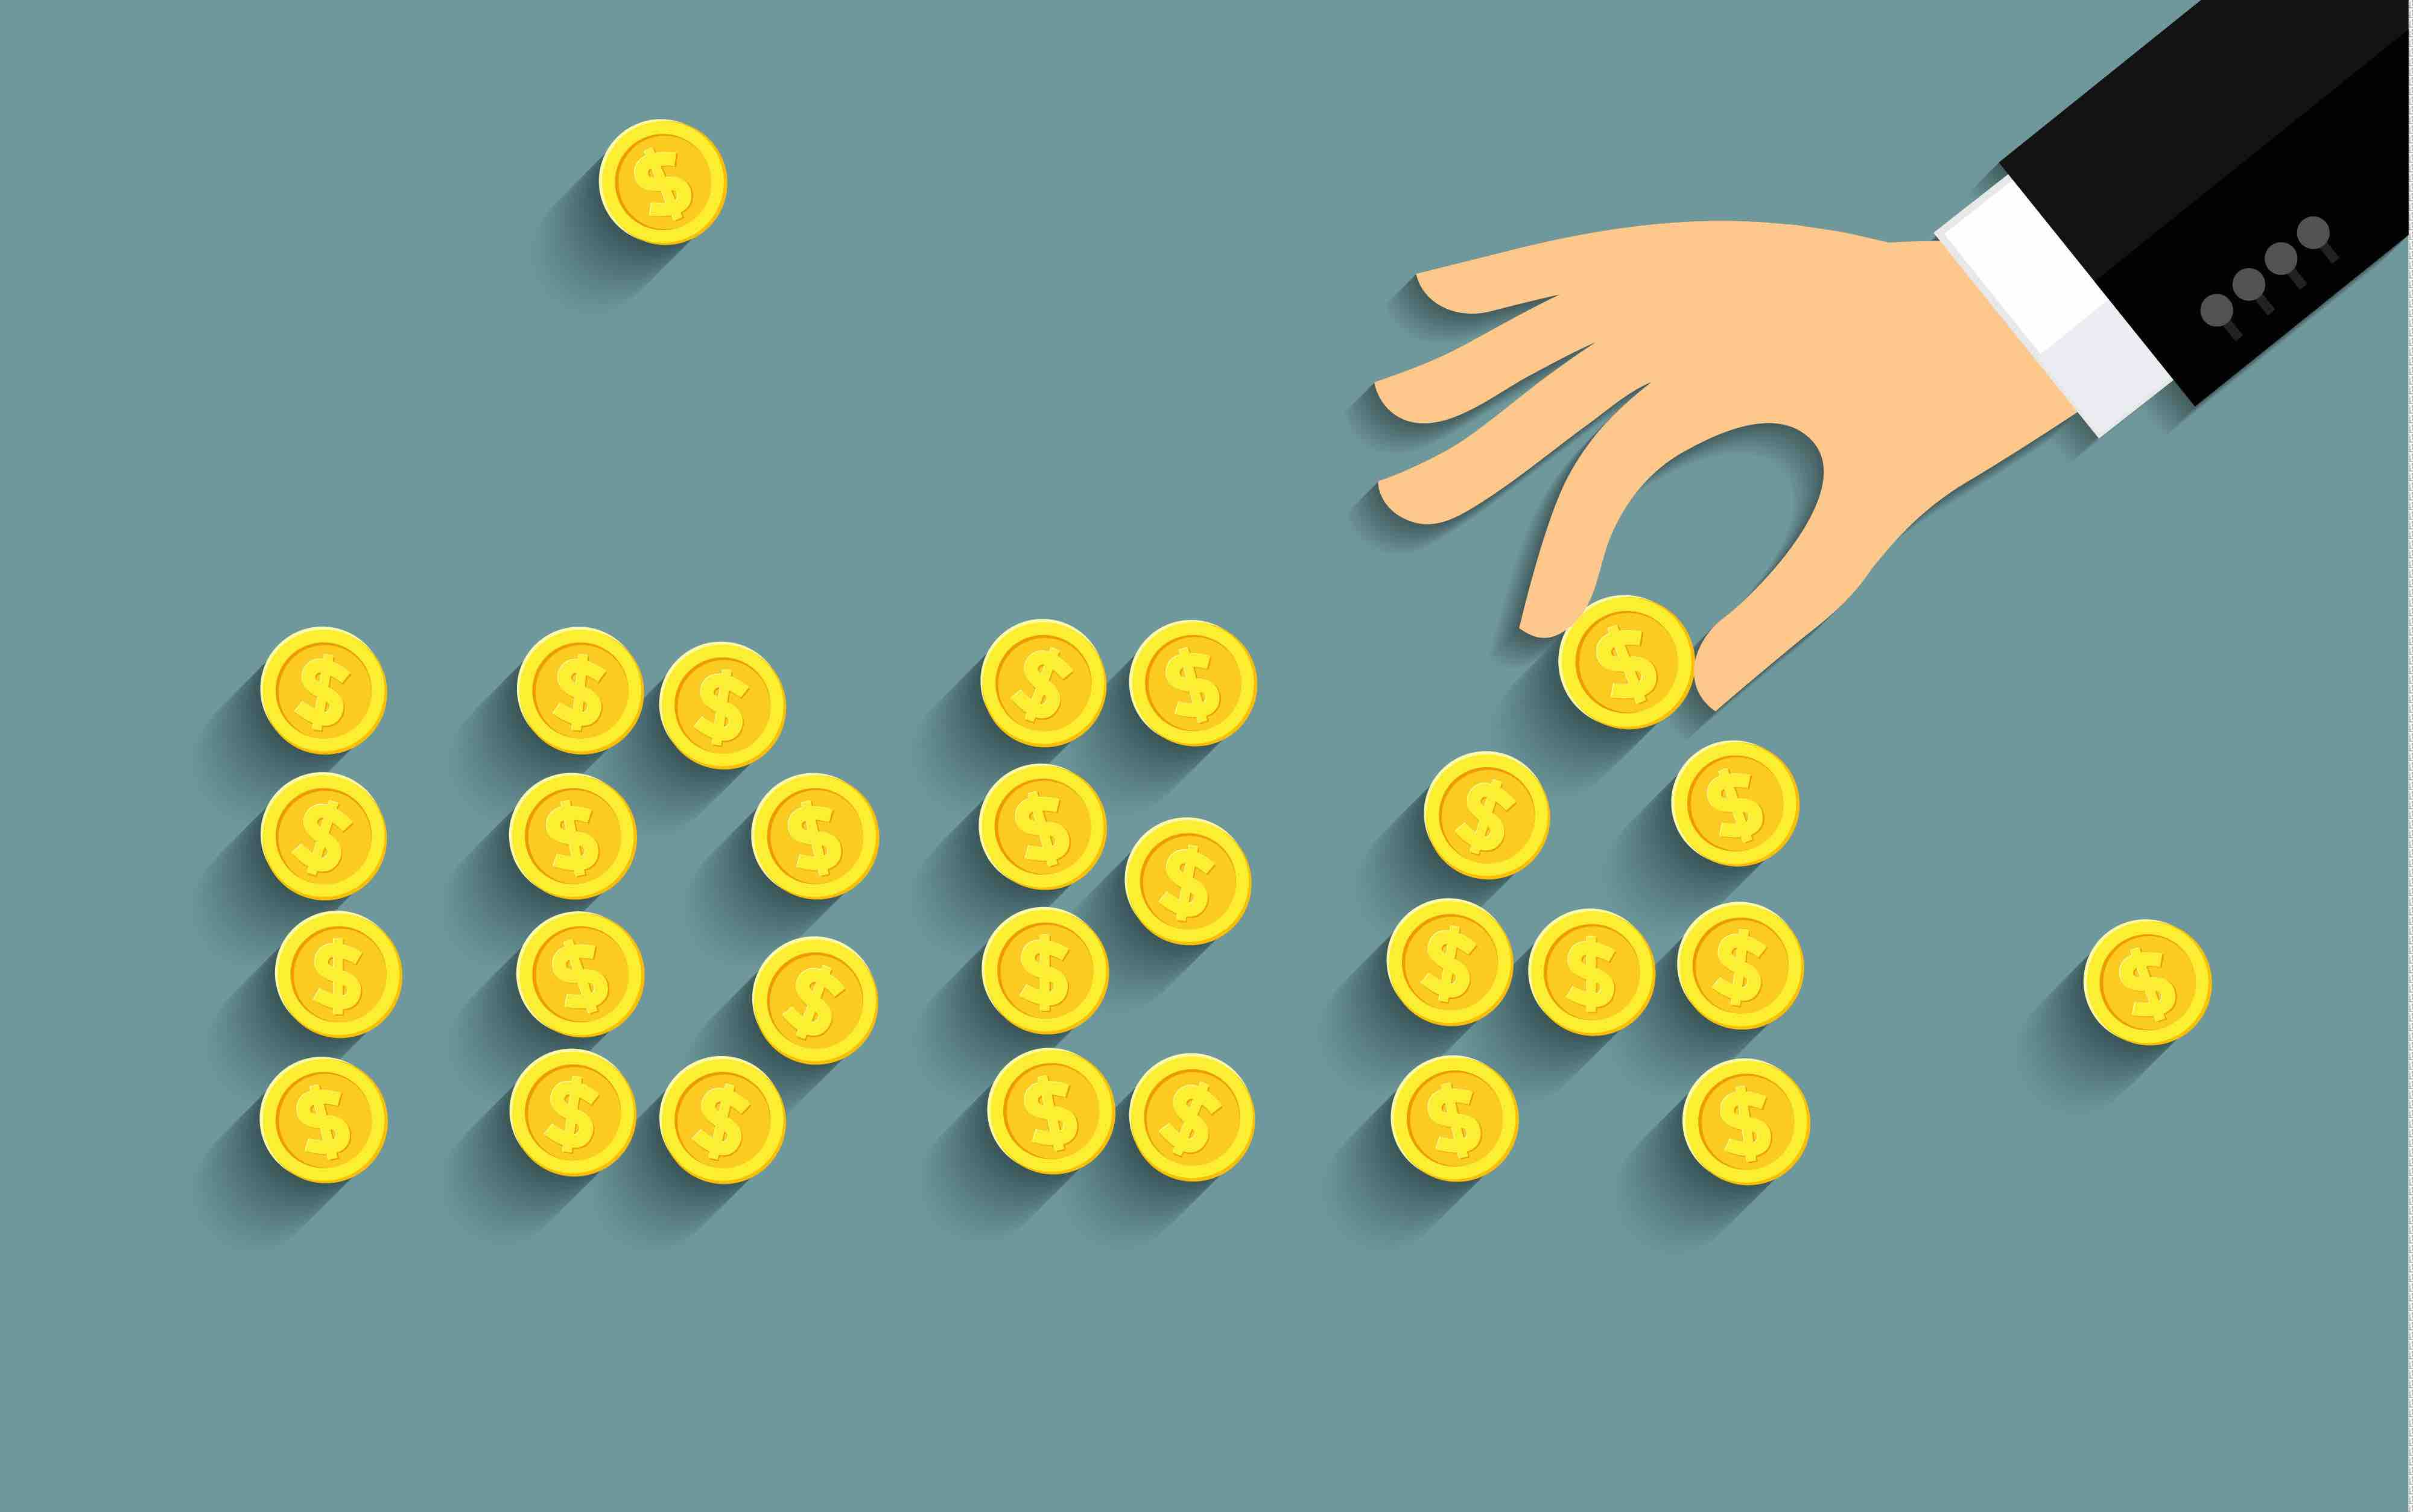 Has crowdfunding become a global engine of job creation by seed funding innovation